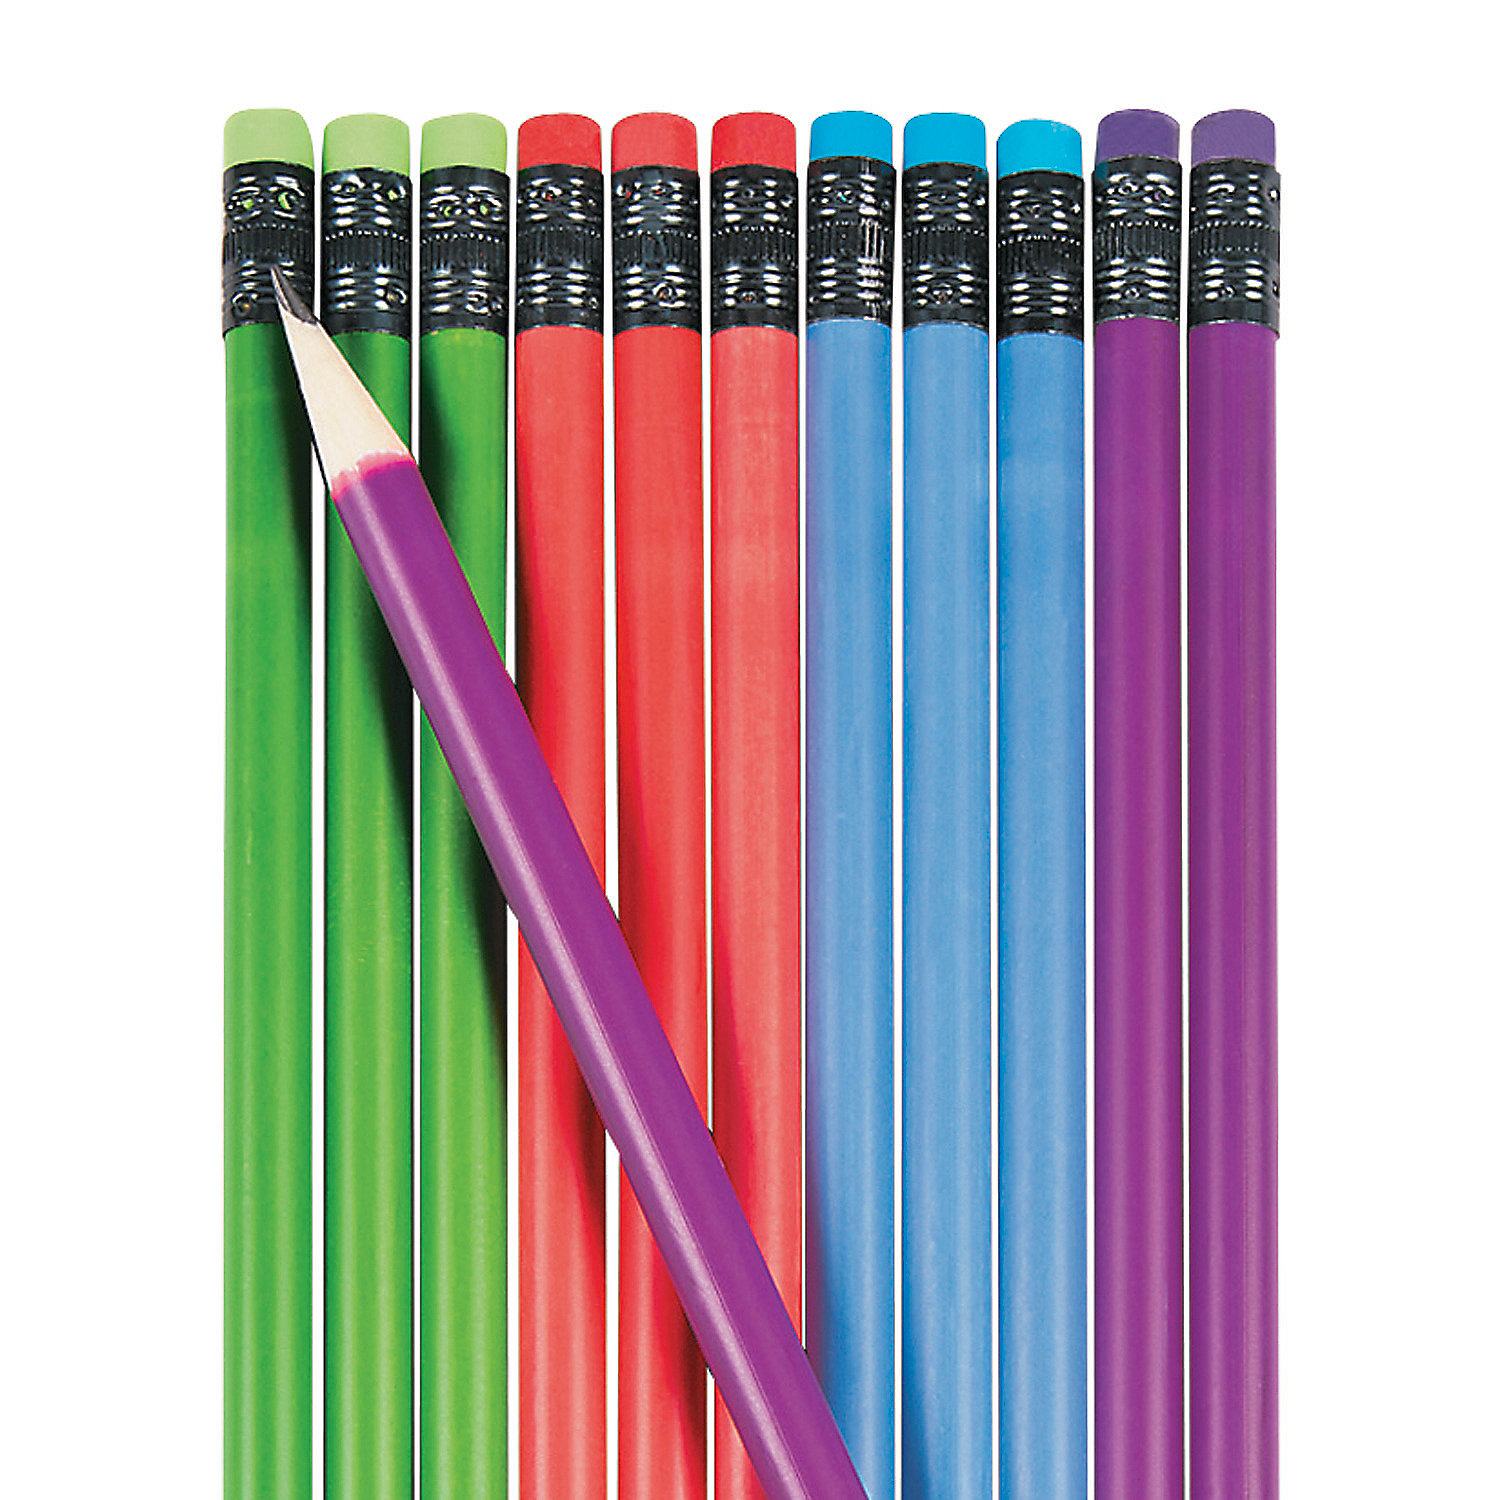 IN-13608399 Color Changing Mood Pencils 24 Piece(s) by Fun Express